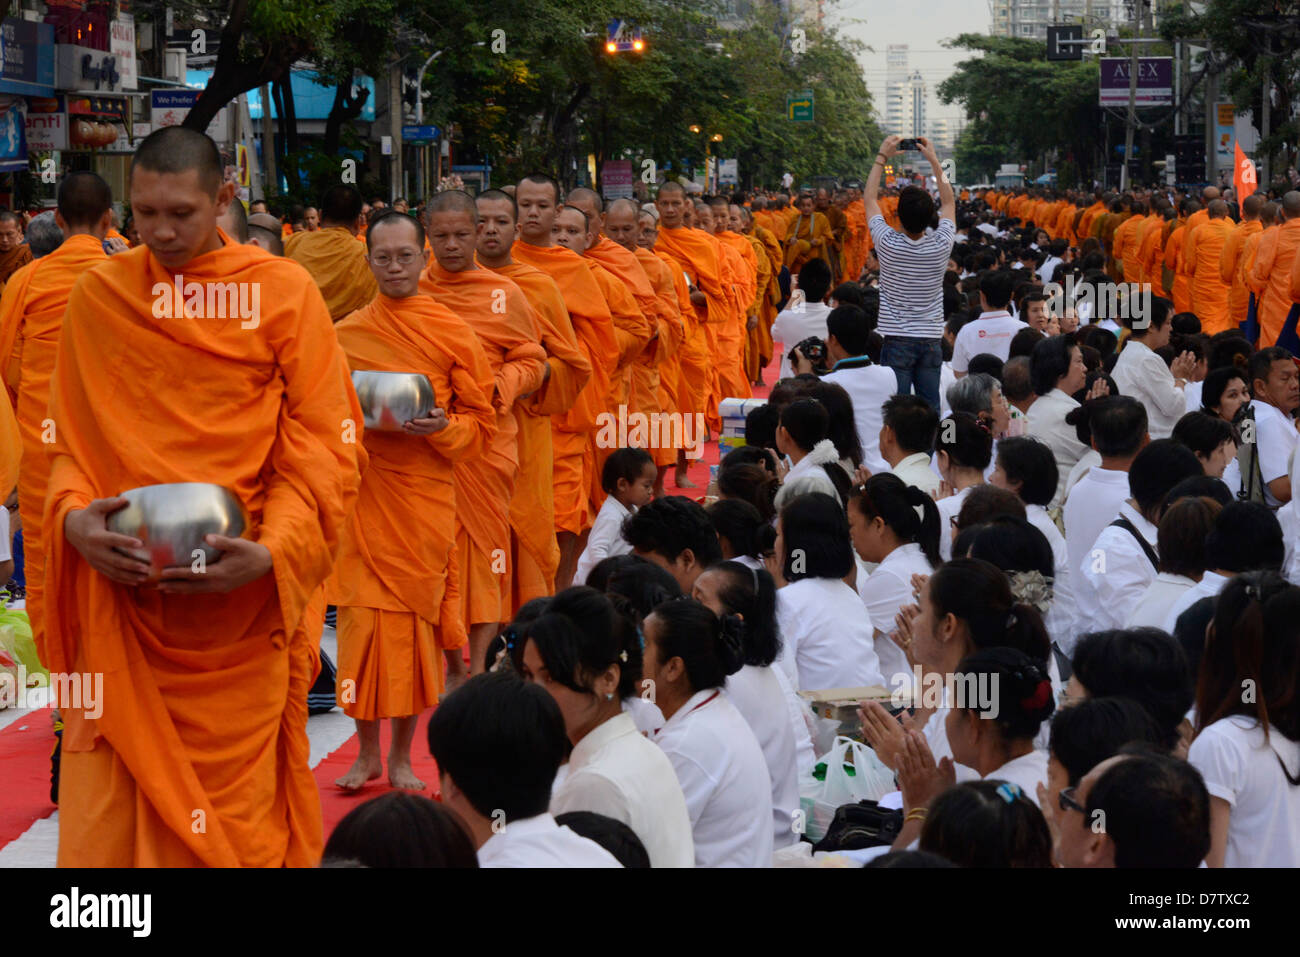 2555 monks gather in Soi 55, Sukhumvit Road to mark the end of Buddhist year 2555, Bangkok, Thailand, Southeast - Stock Image